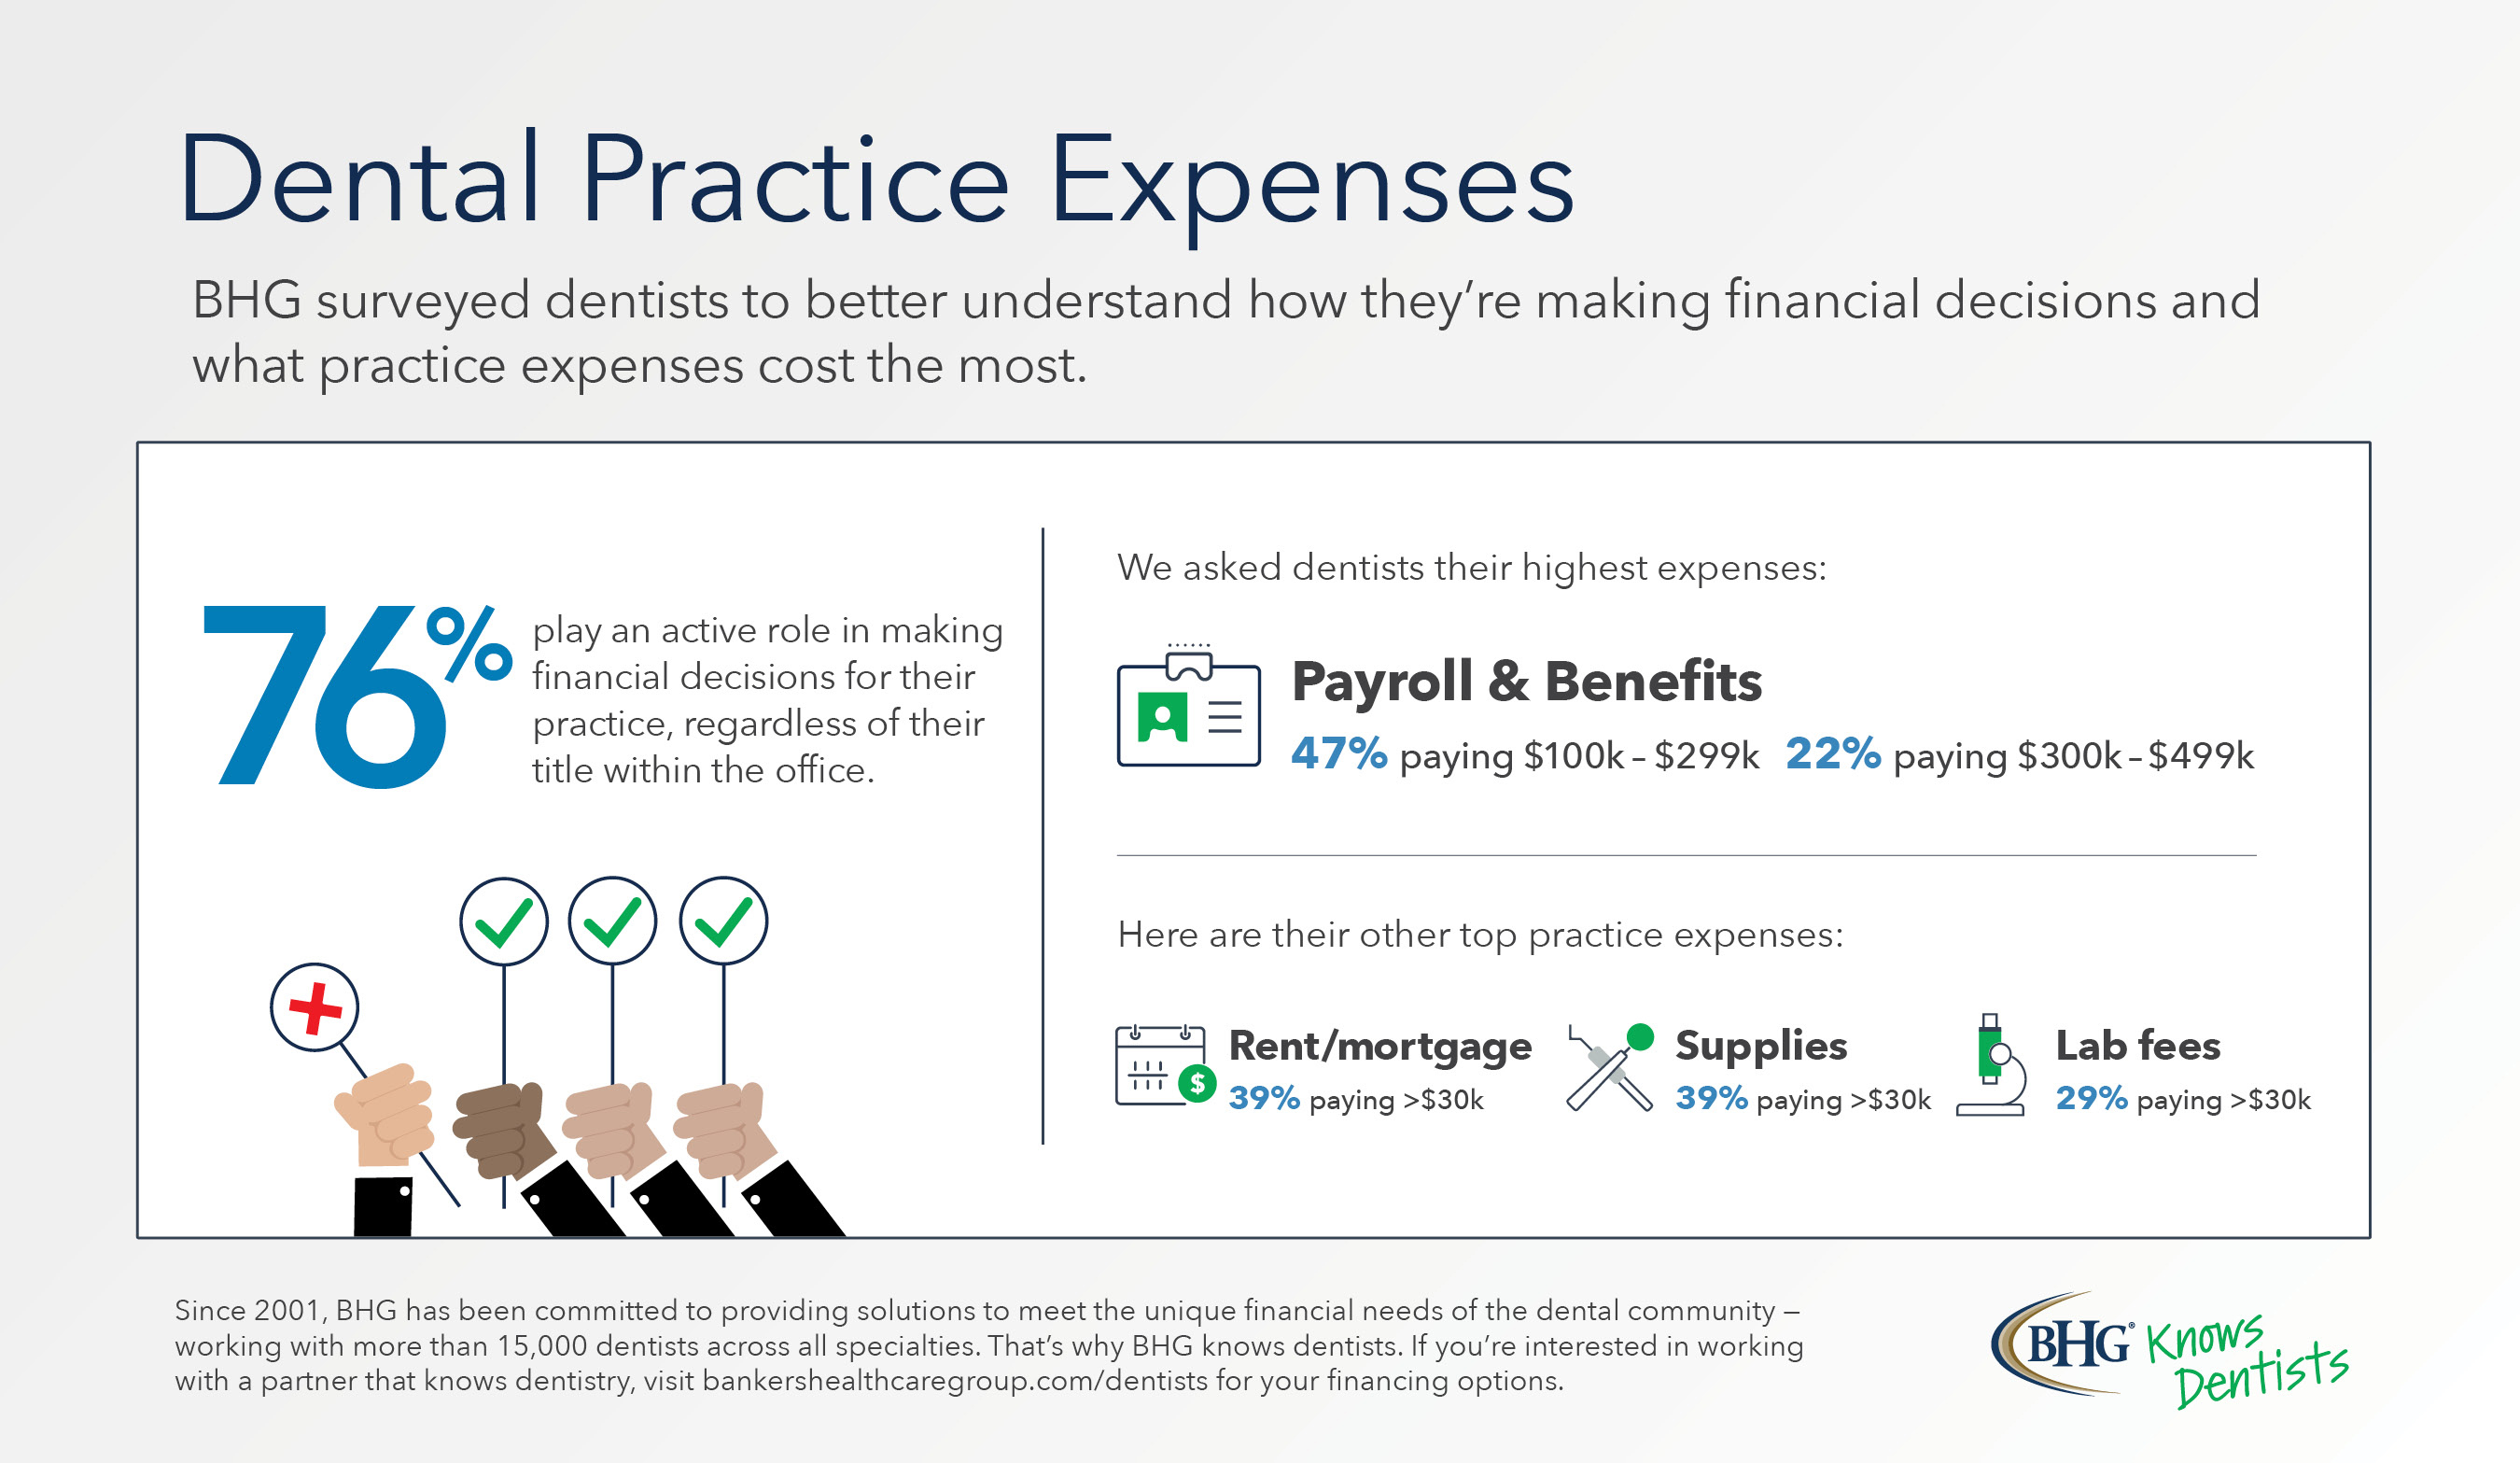 Dental Practice Expenses